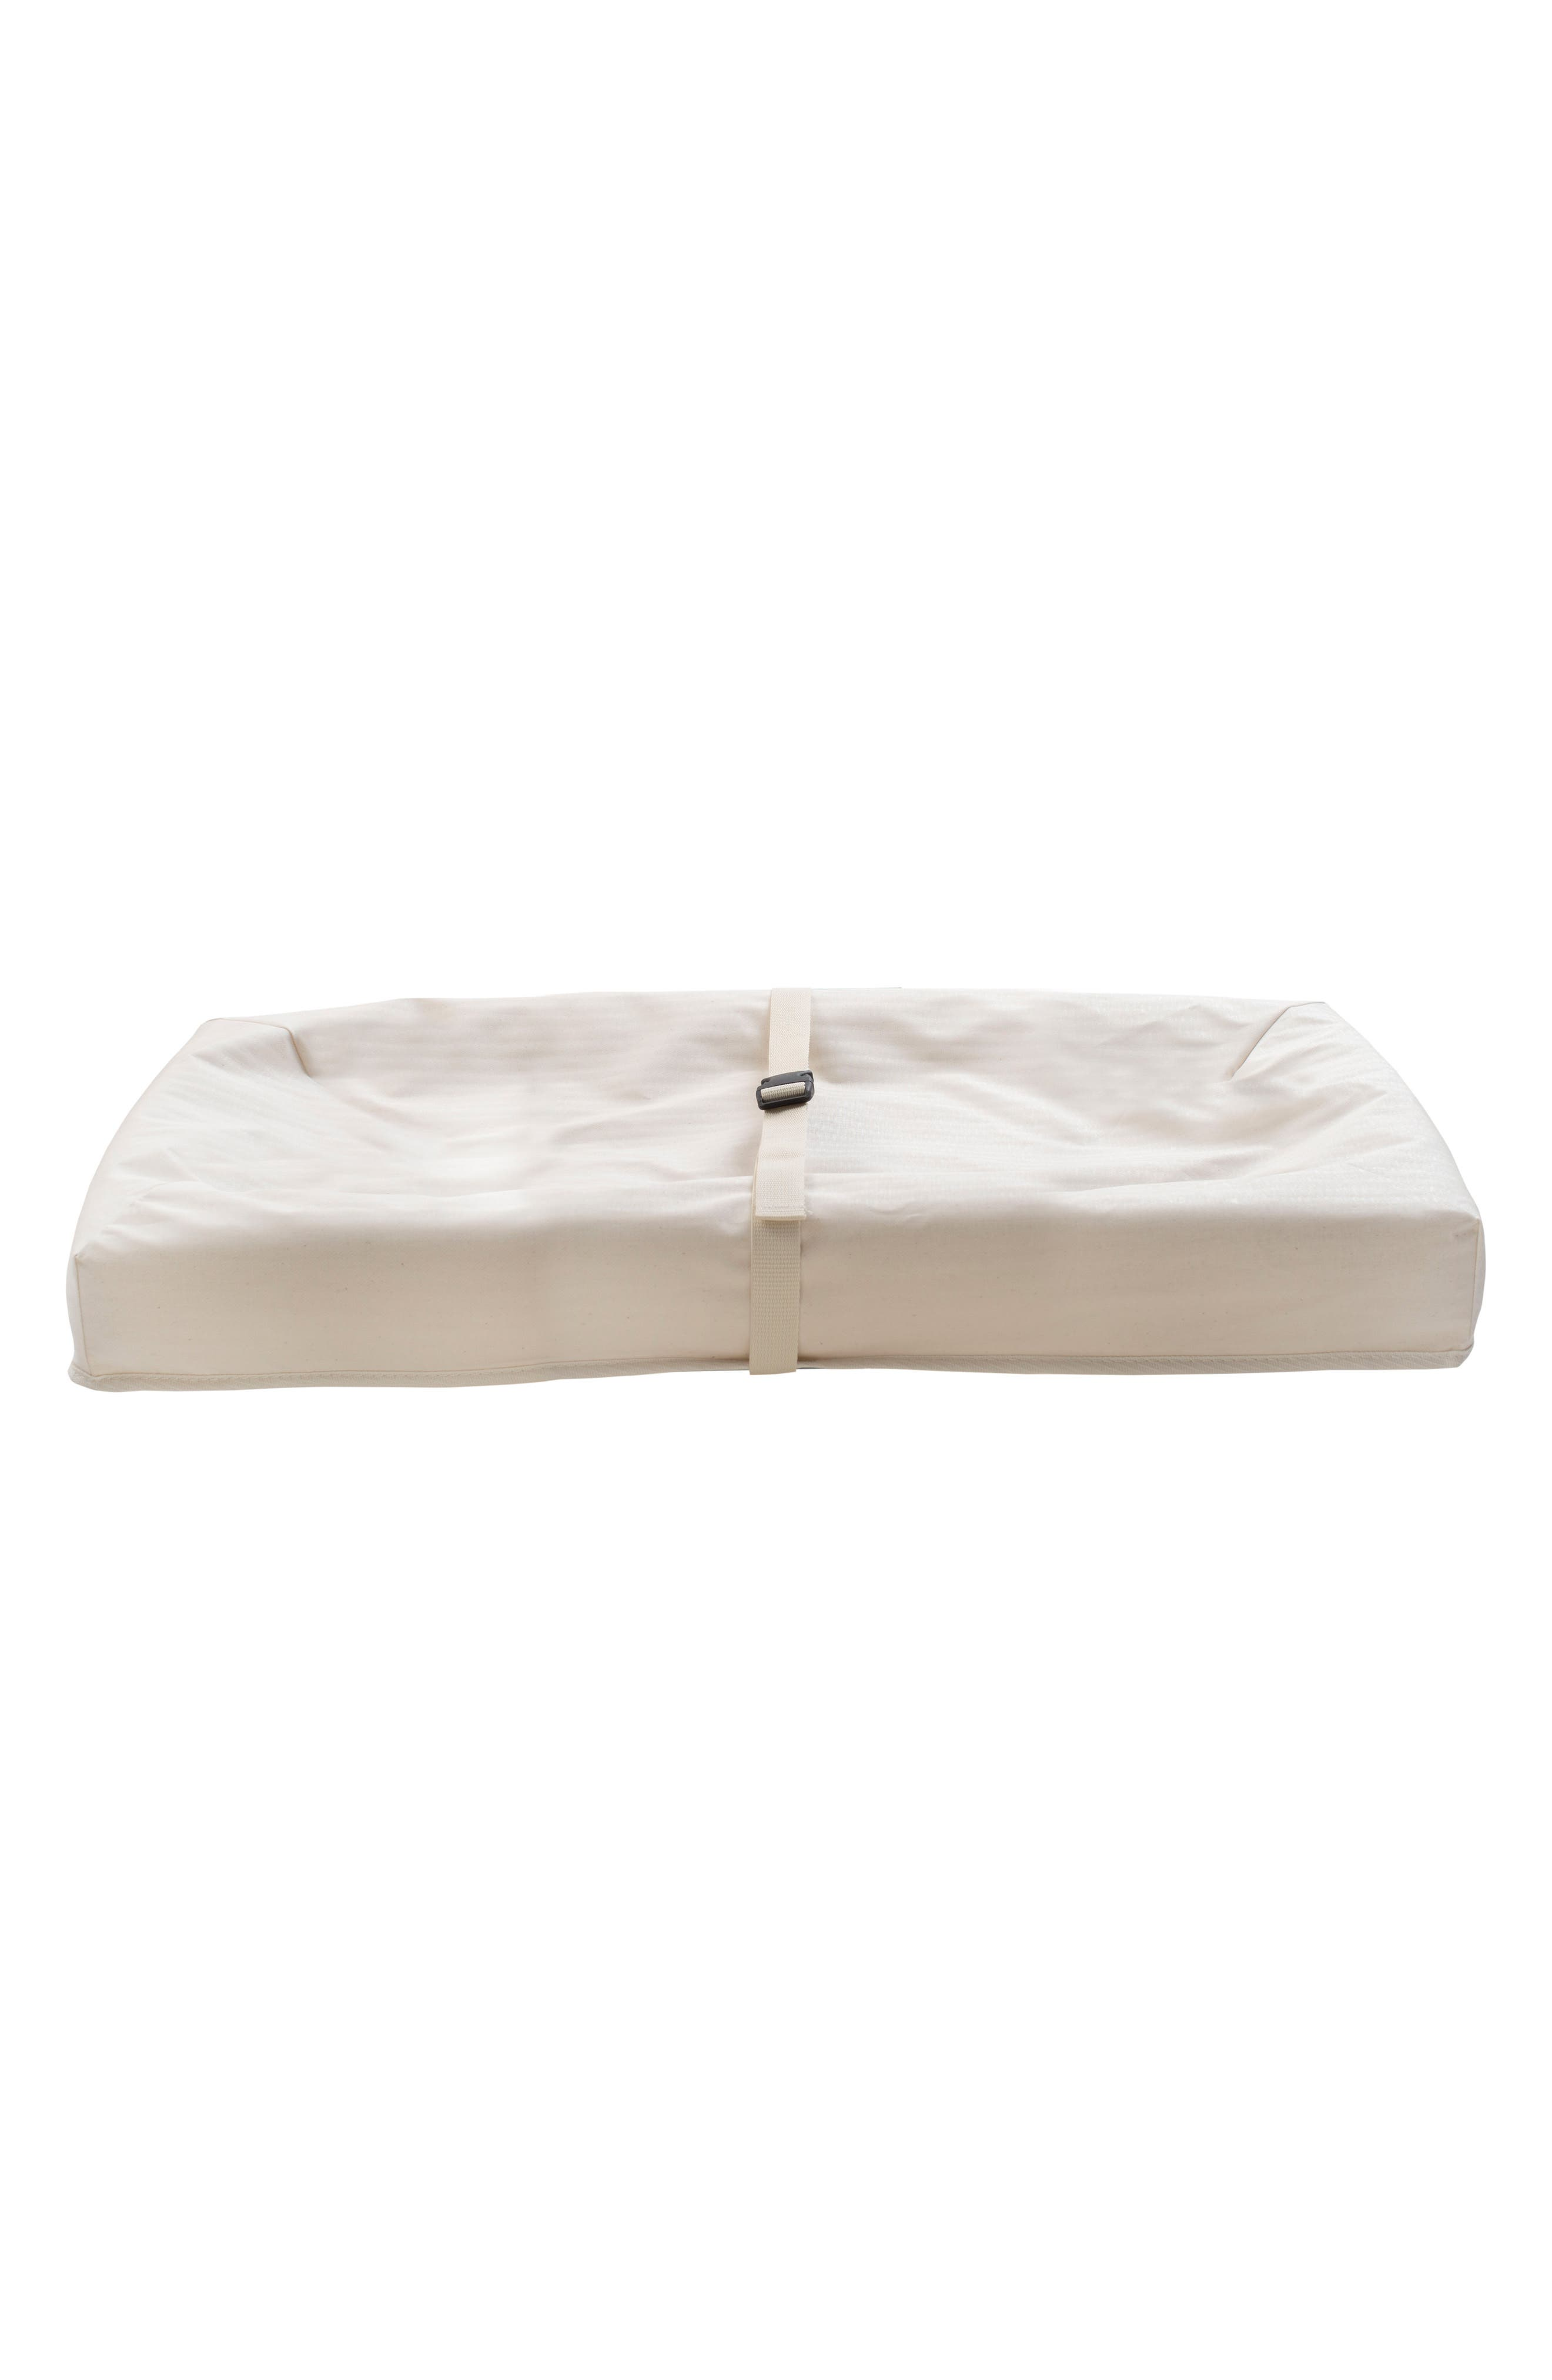 Naturepedic x Rosie Pope Pure & Secure Four-Sided Changing Pad (Nordstrom Exclusive)